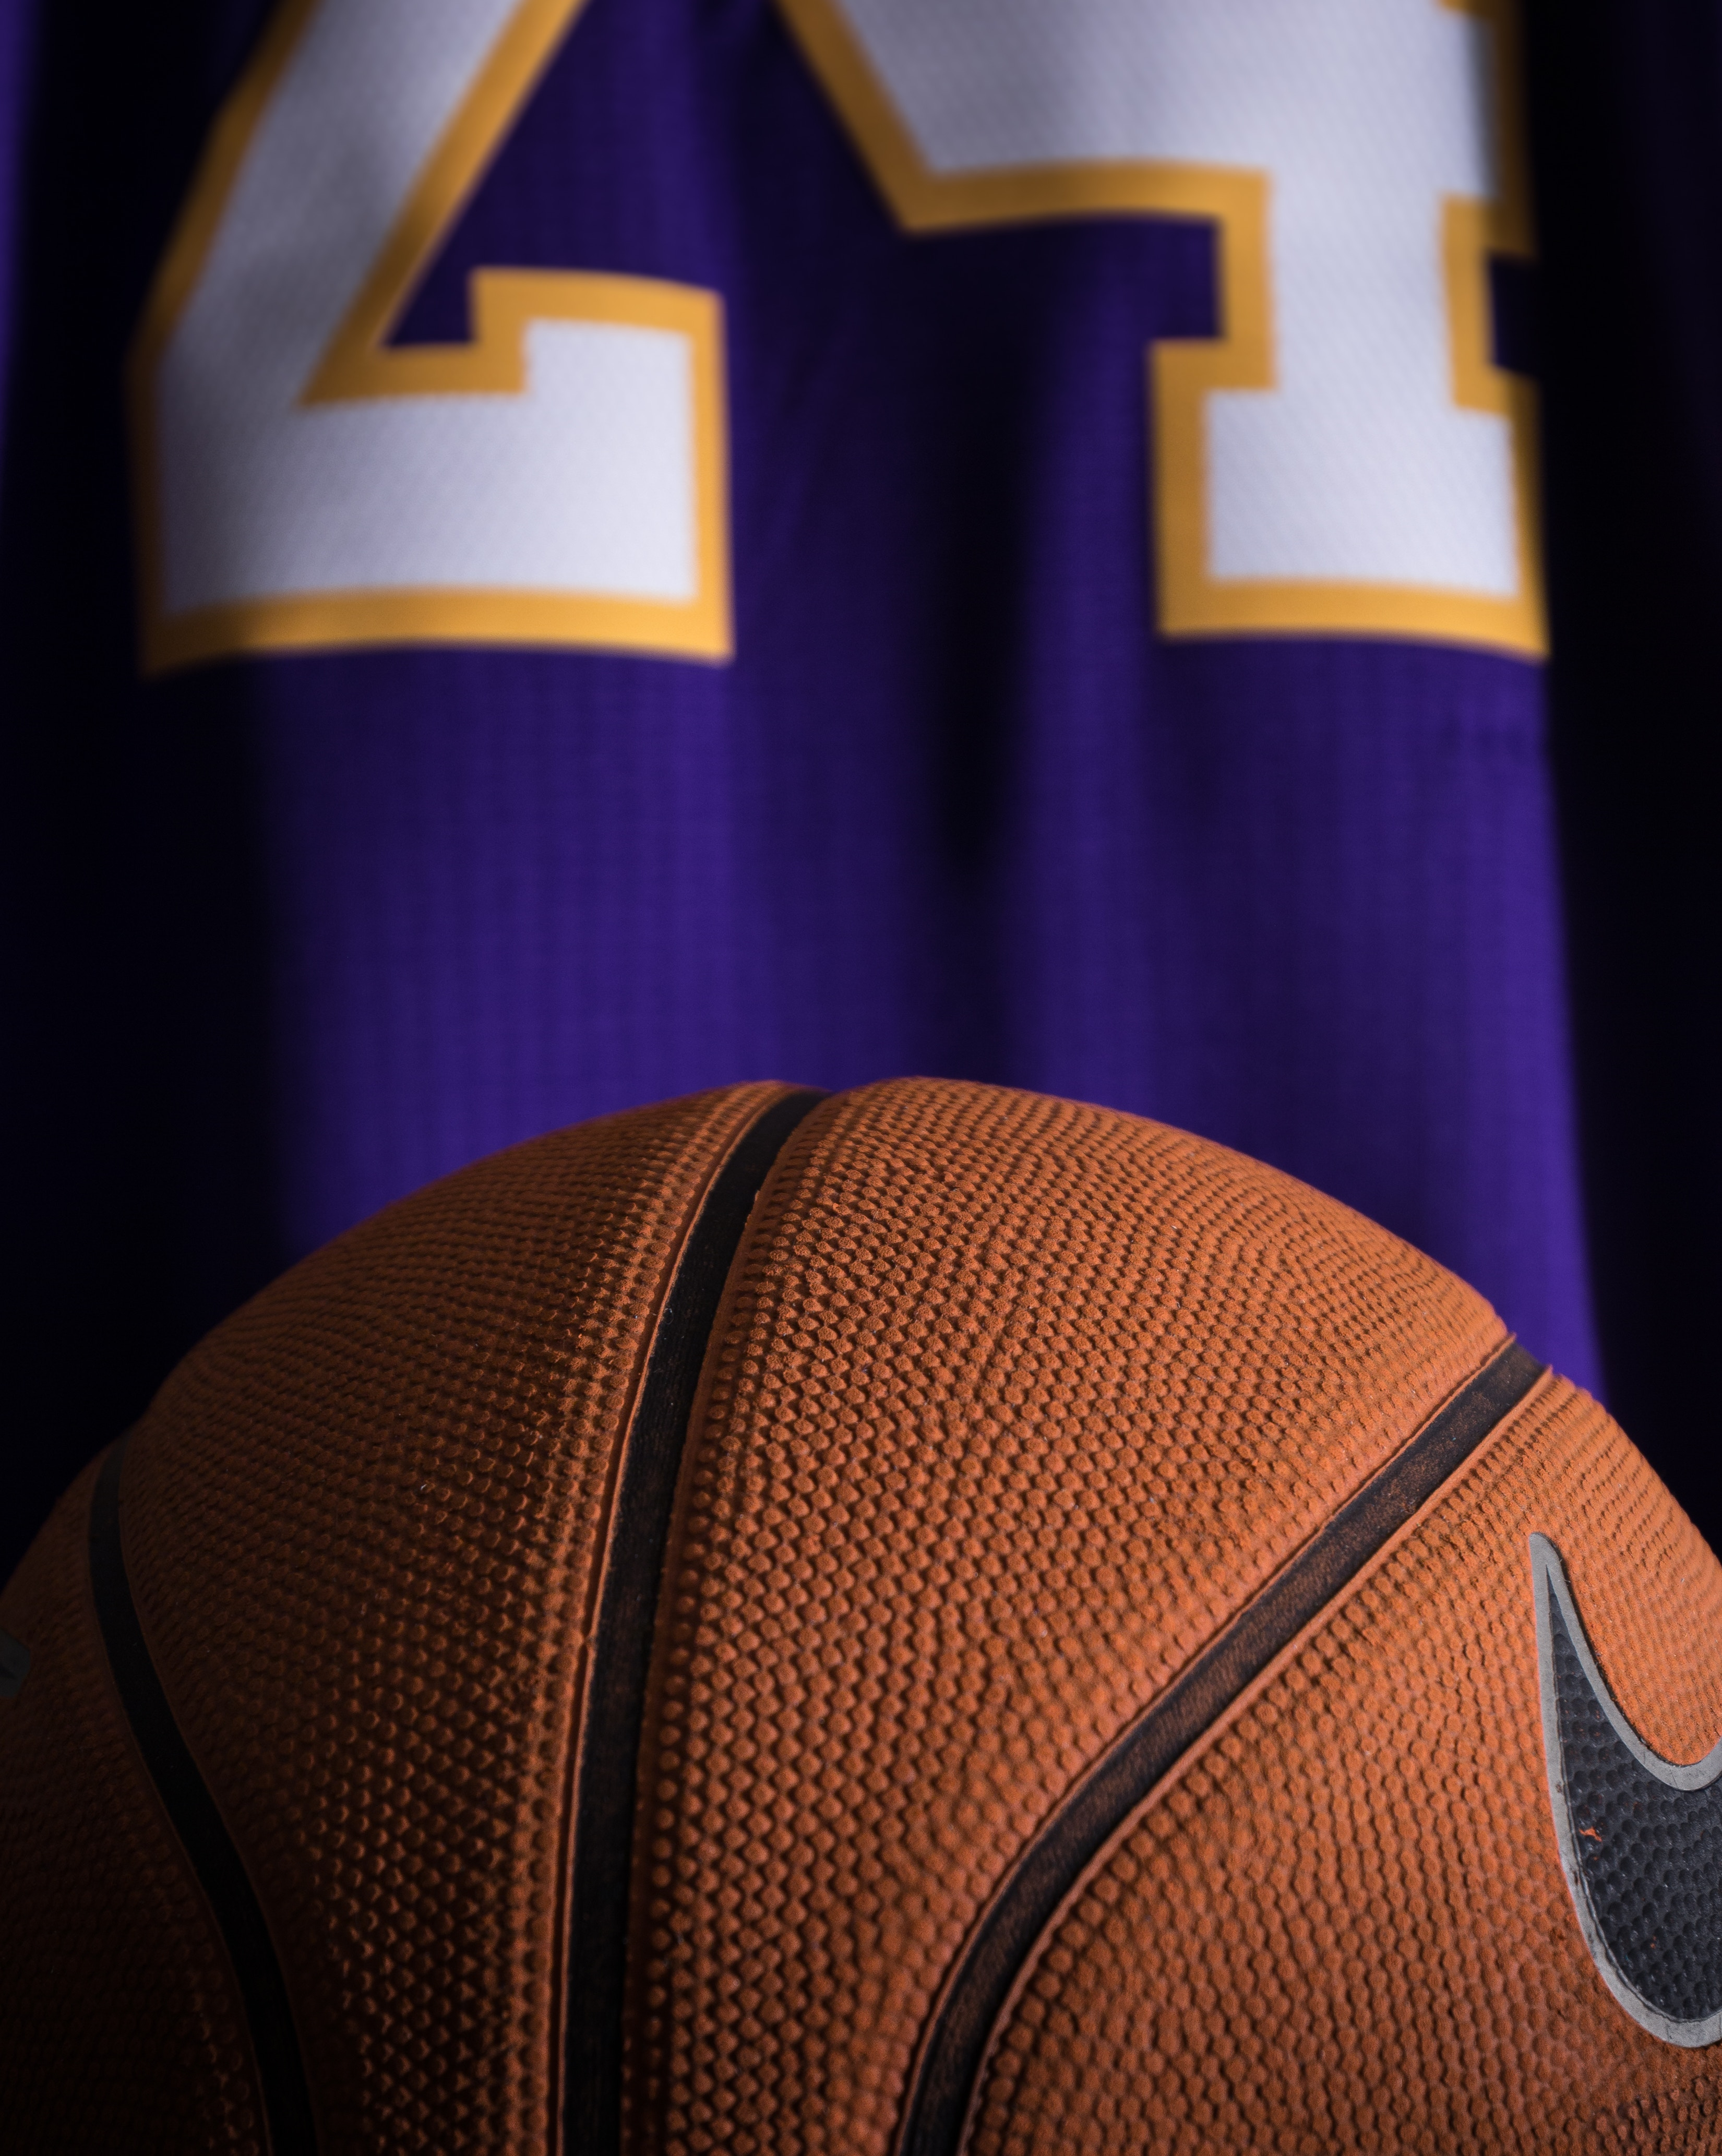 Lakers uniform showing contrast between purple and yellow